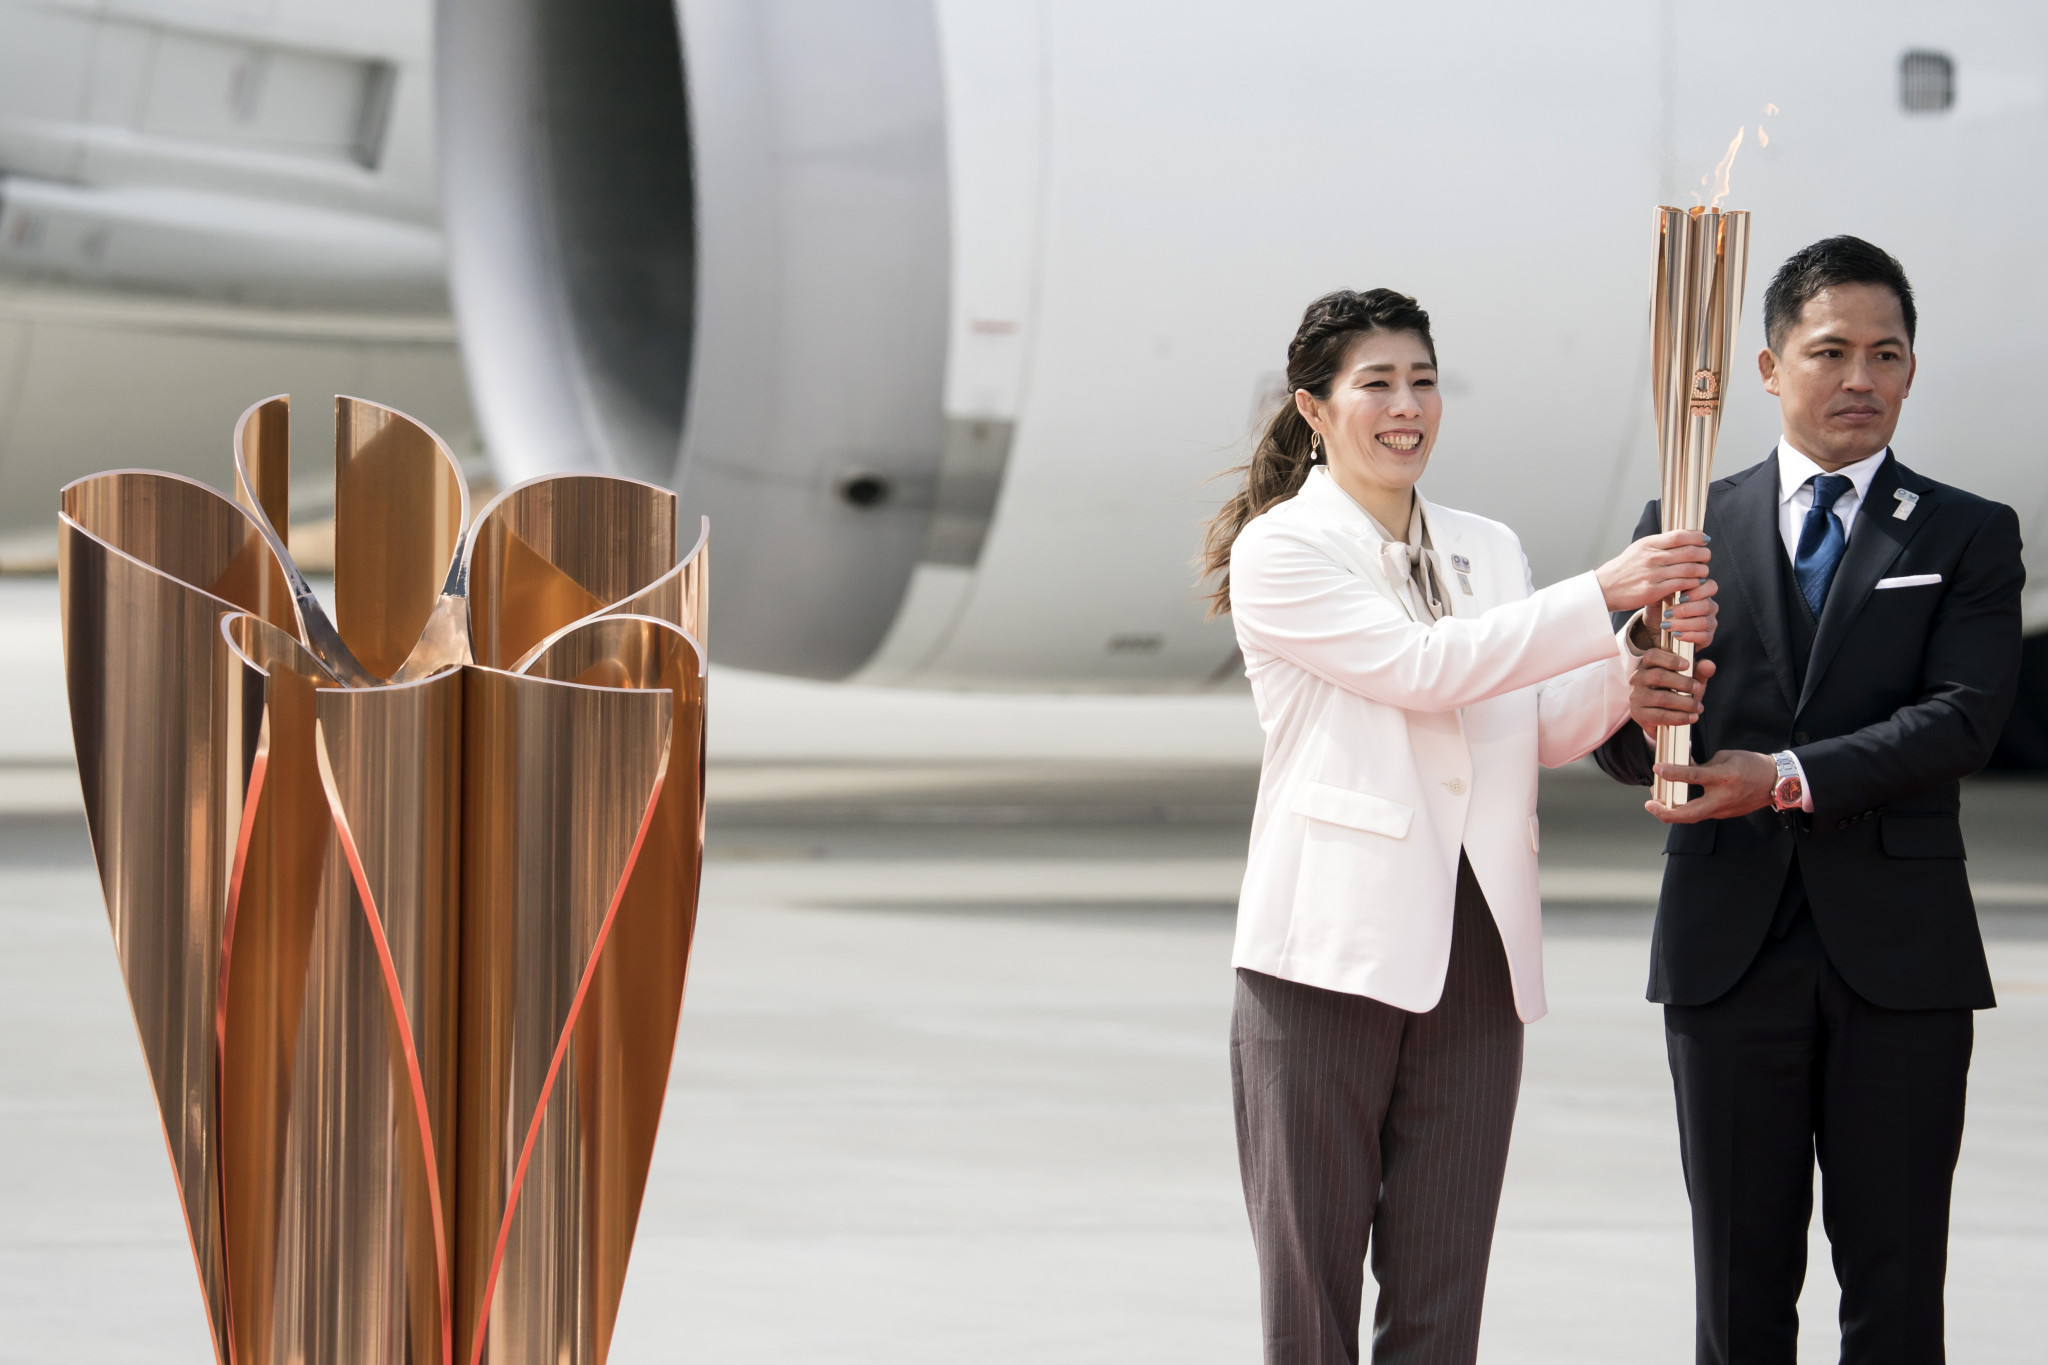 The Olympic Flame arrived in Japan earlier this year ©Getty Images